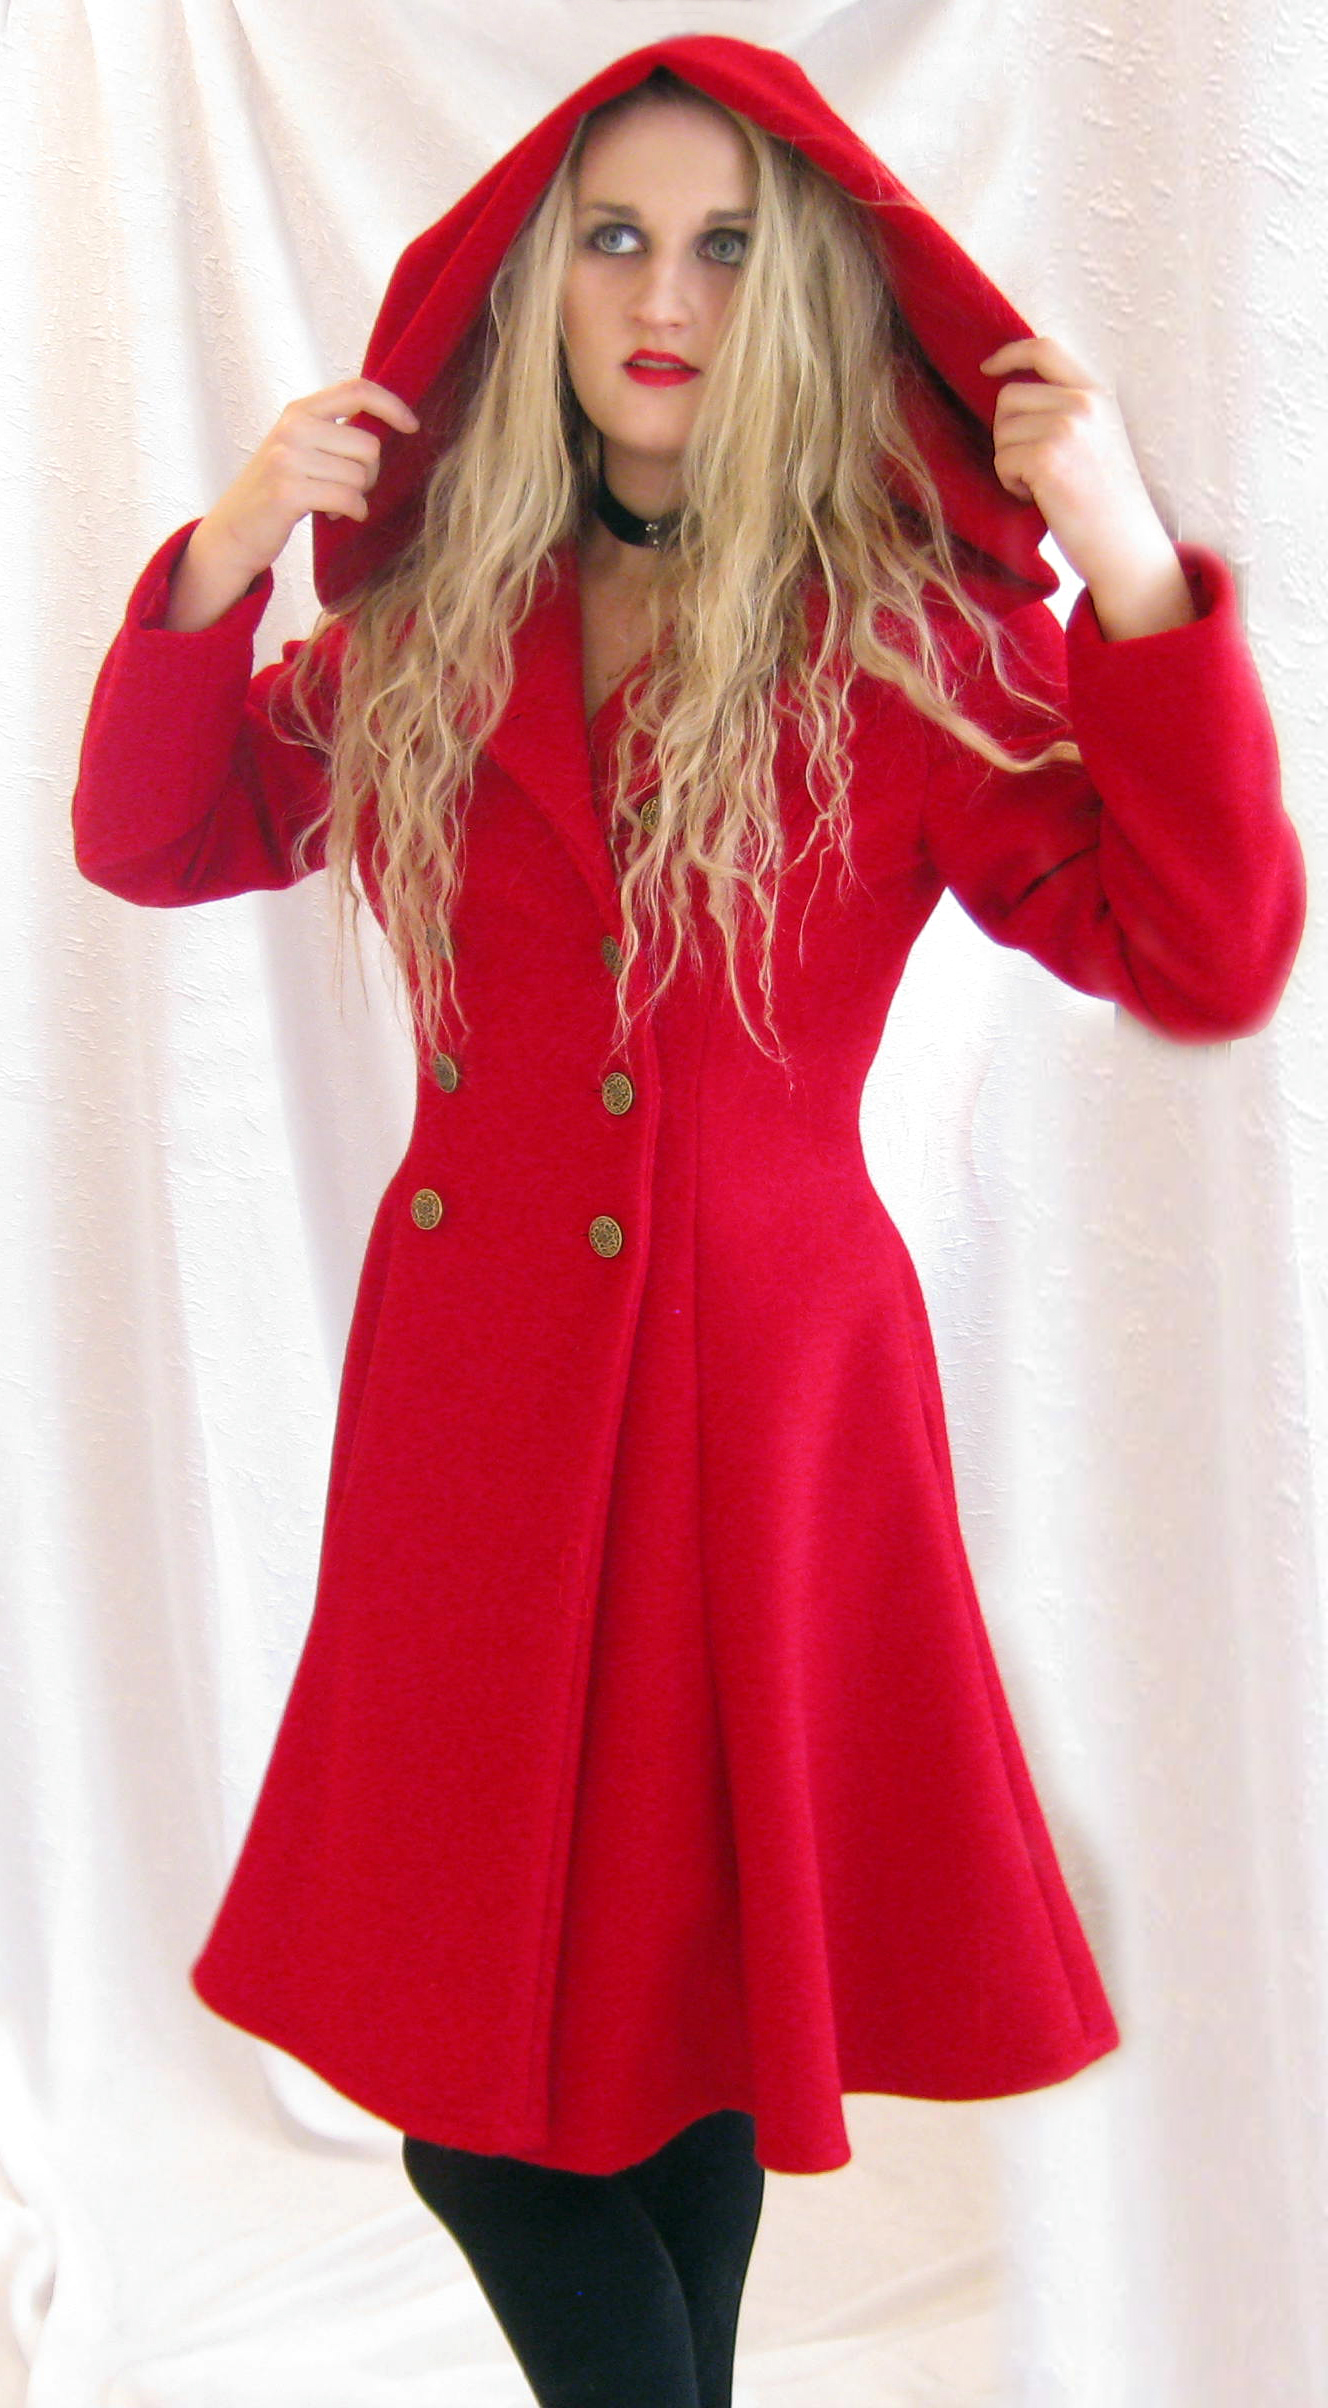 Red Riding Hood Coat, View 2 by ThreeRingCinema on DeviantArt